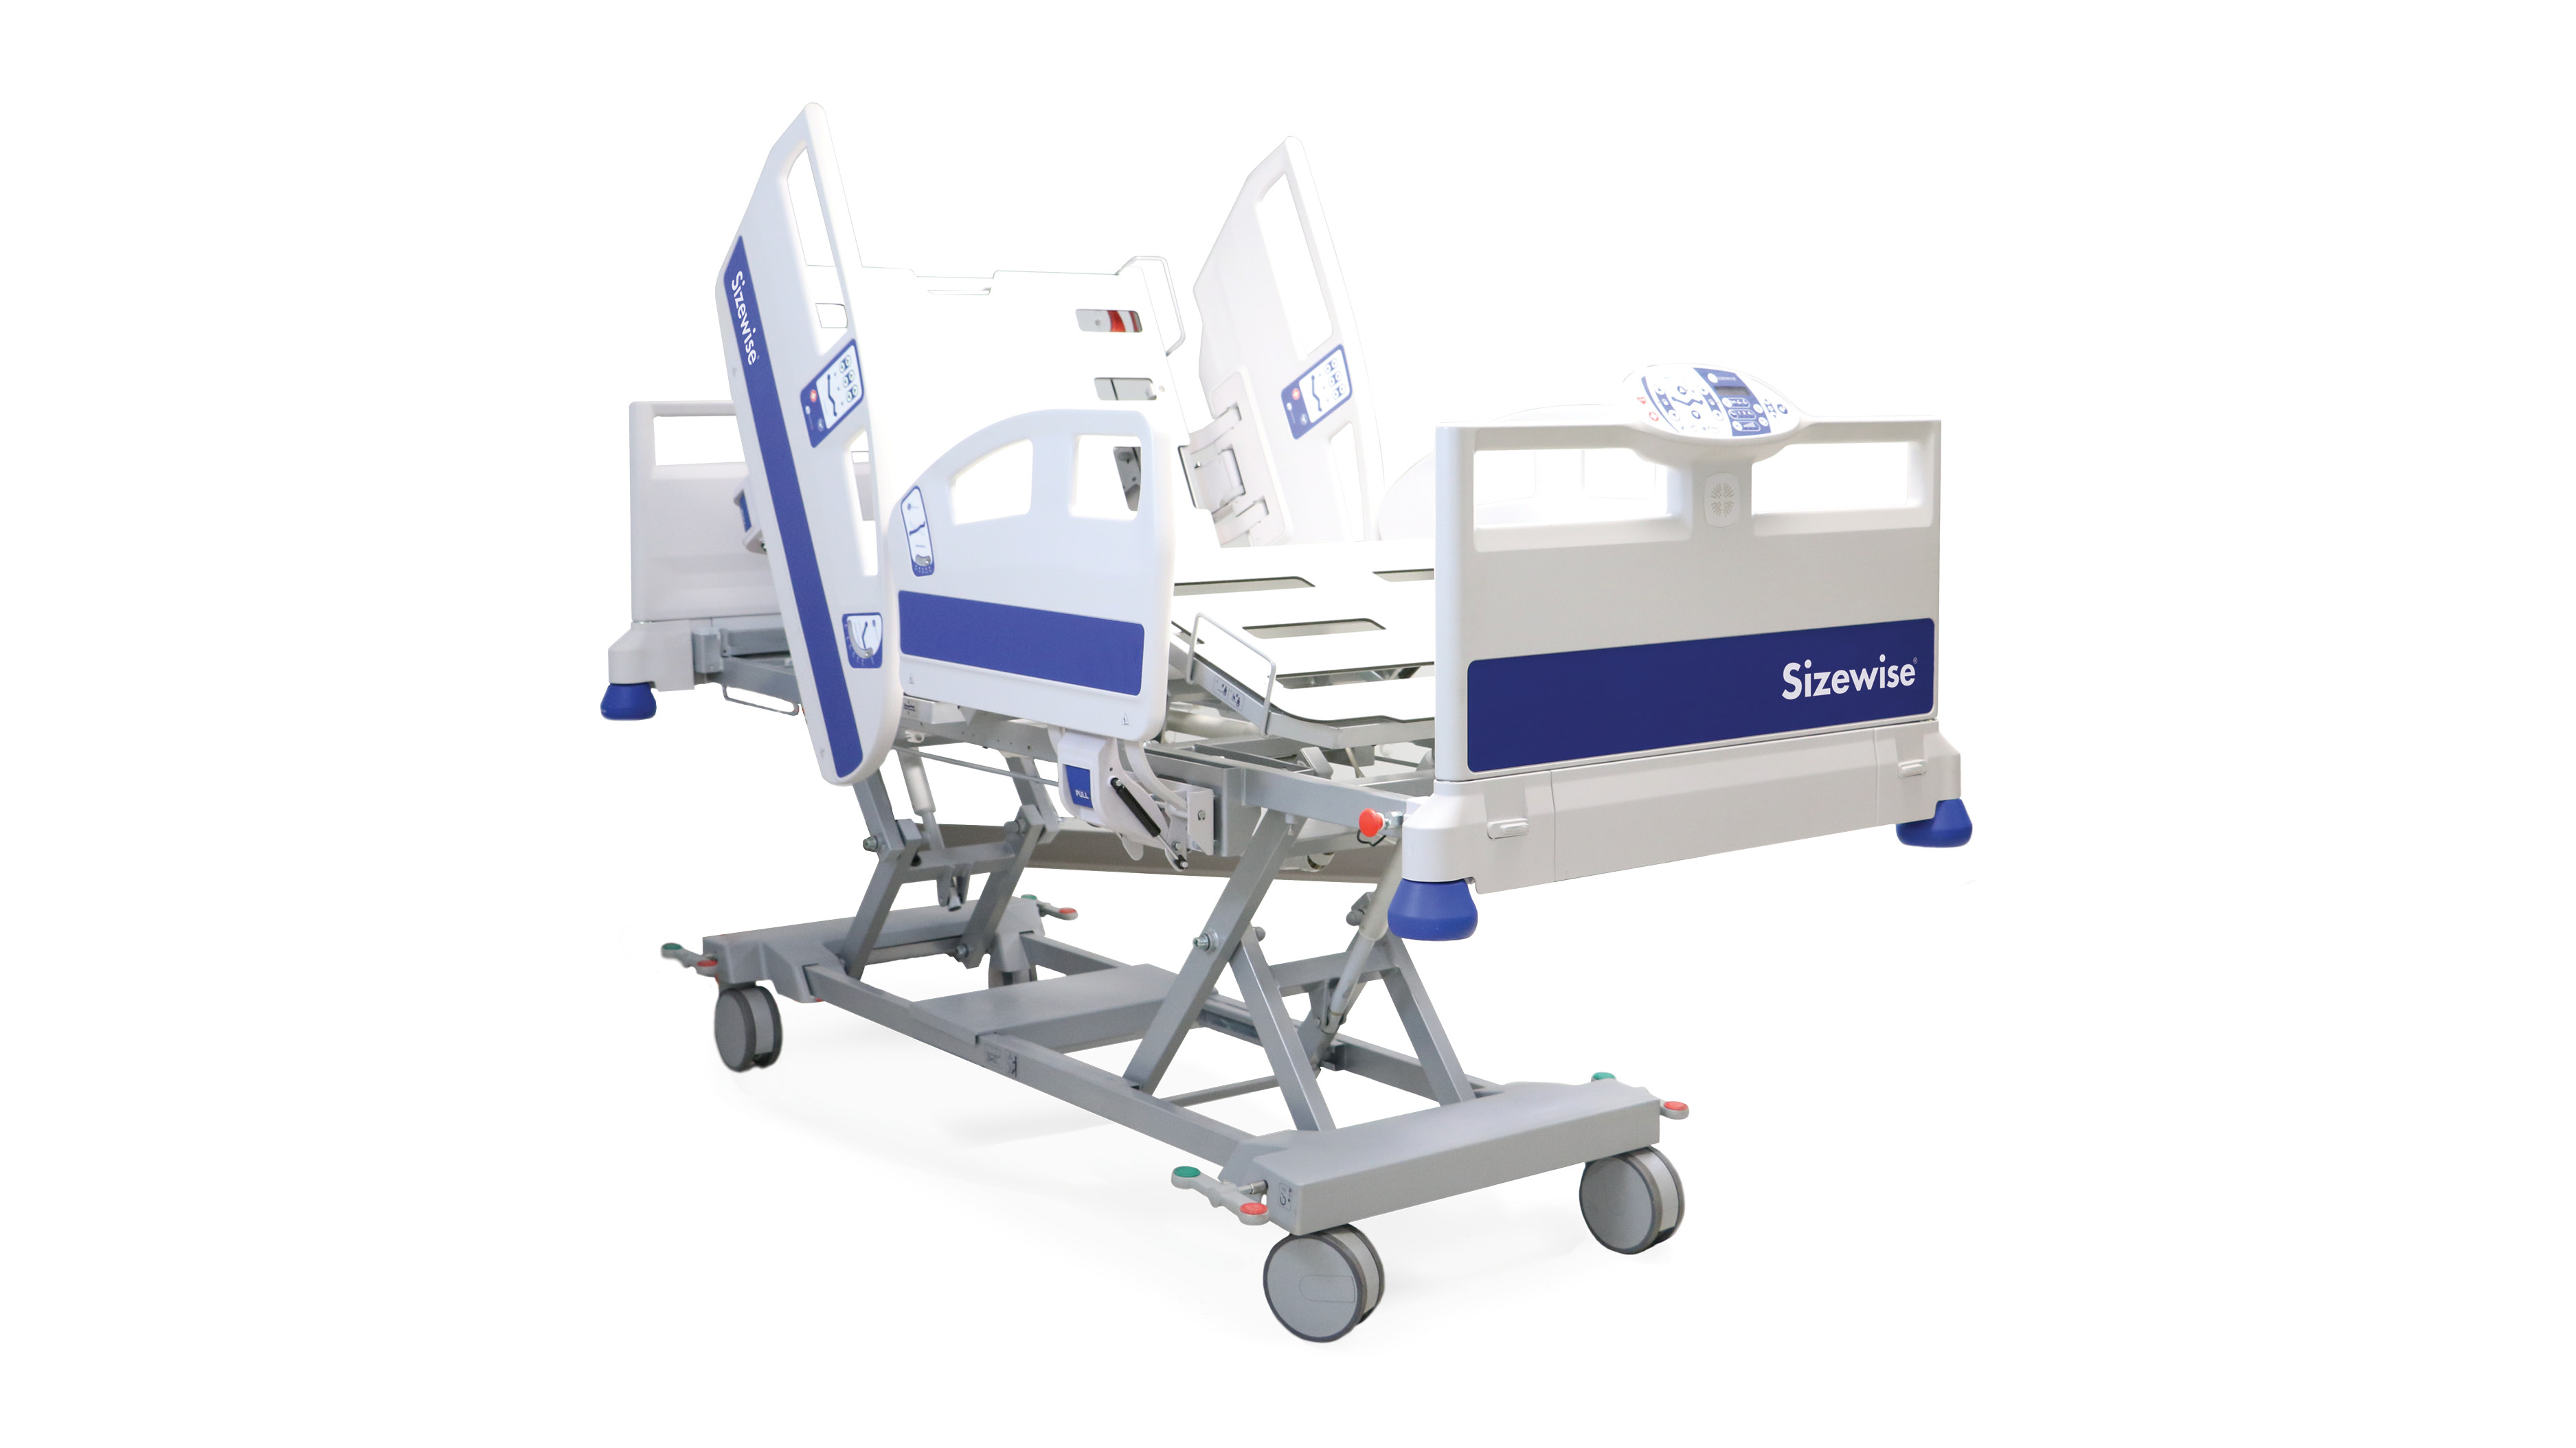 Sizewise - Hospital Beds, Support Surfaces, and Mobility Equipment